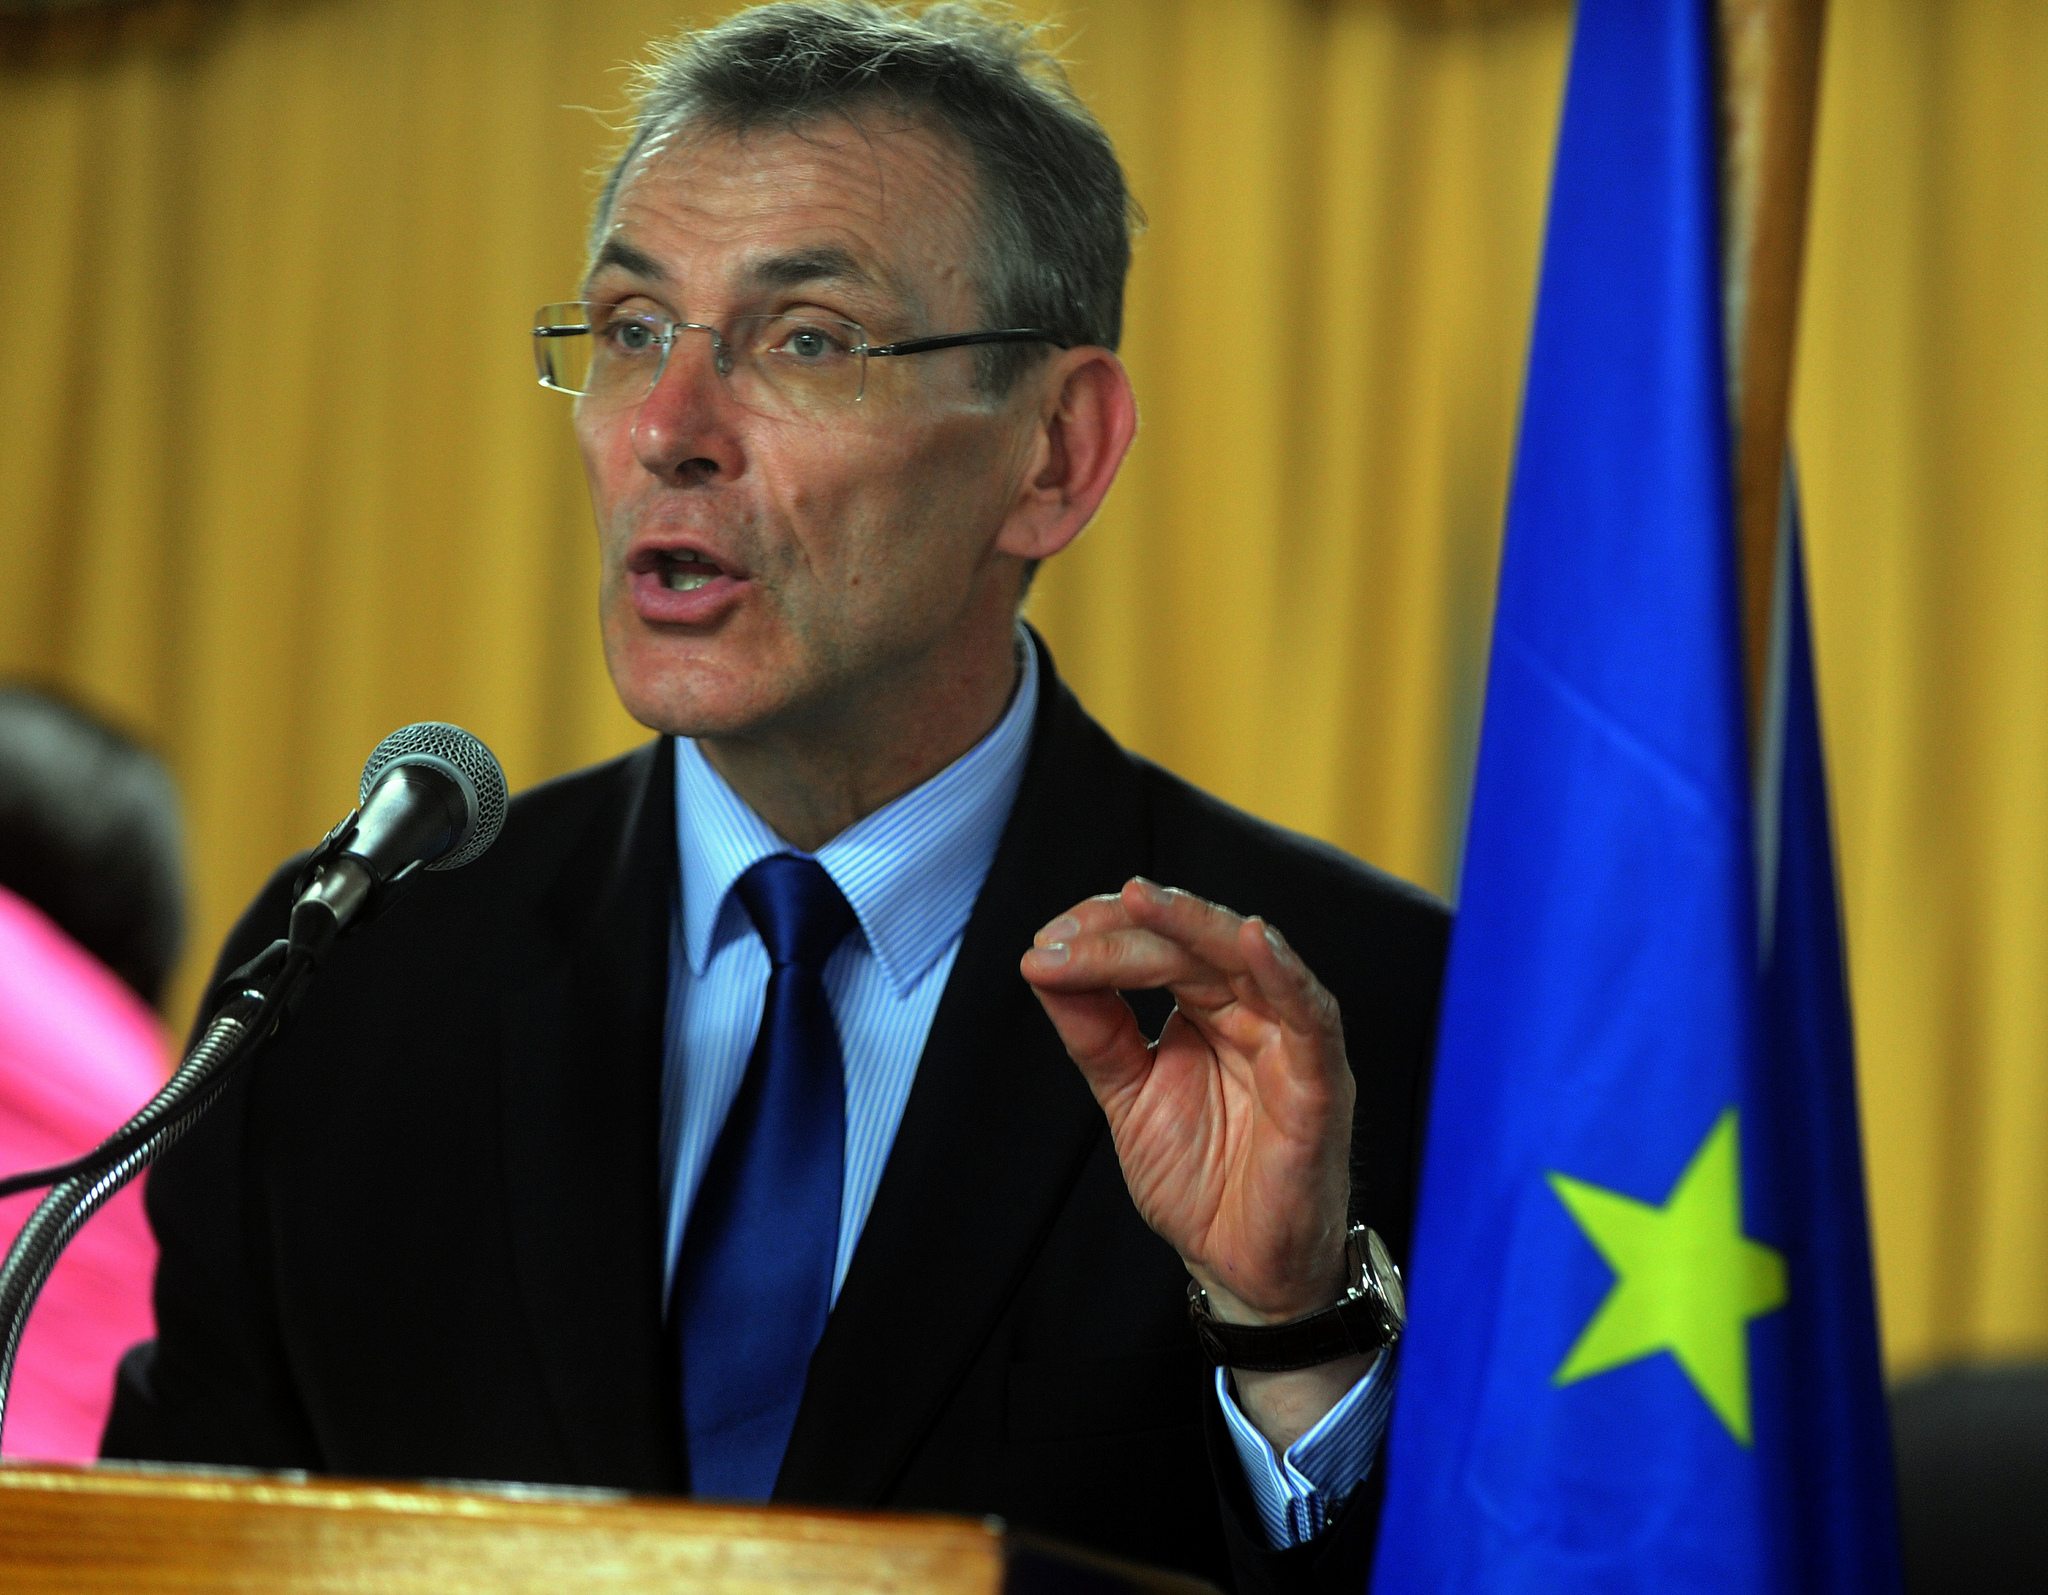 Andris Piebalgs, the then EU Commissioner for Development